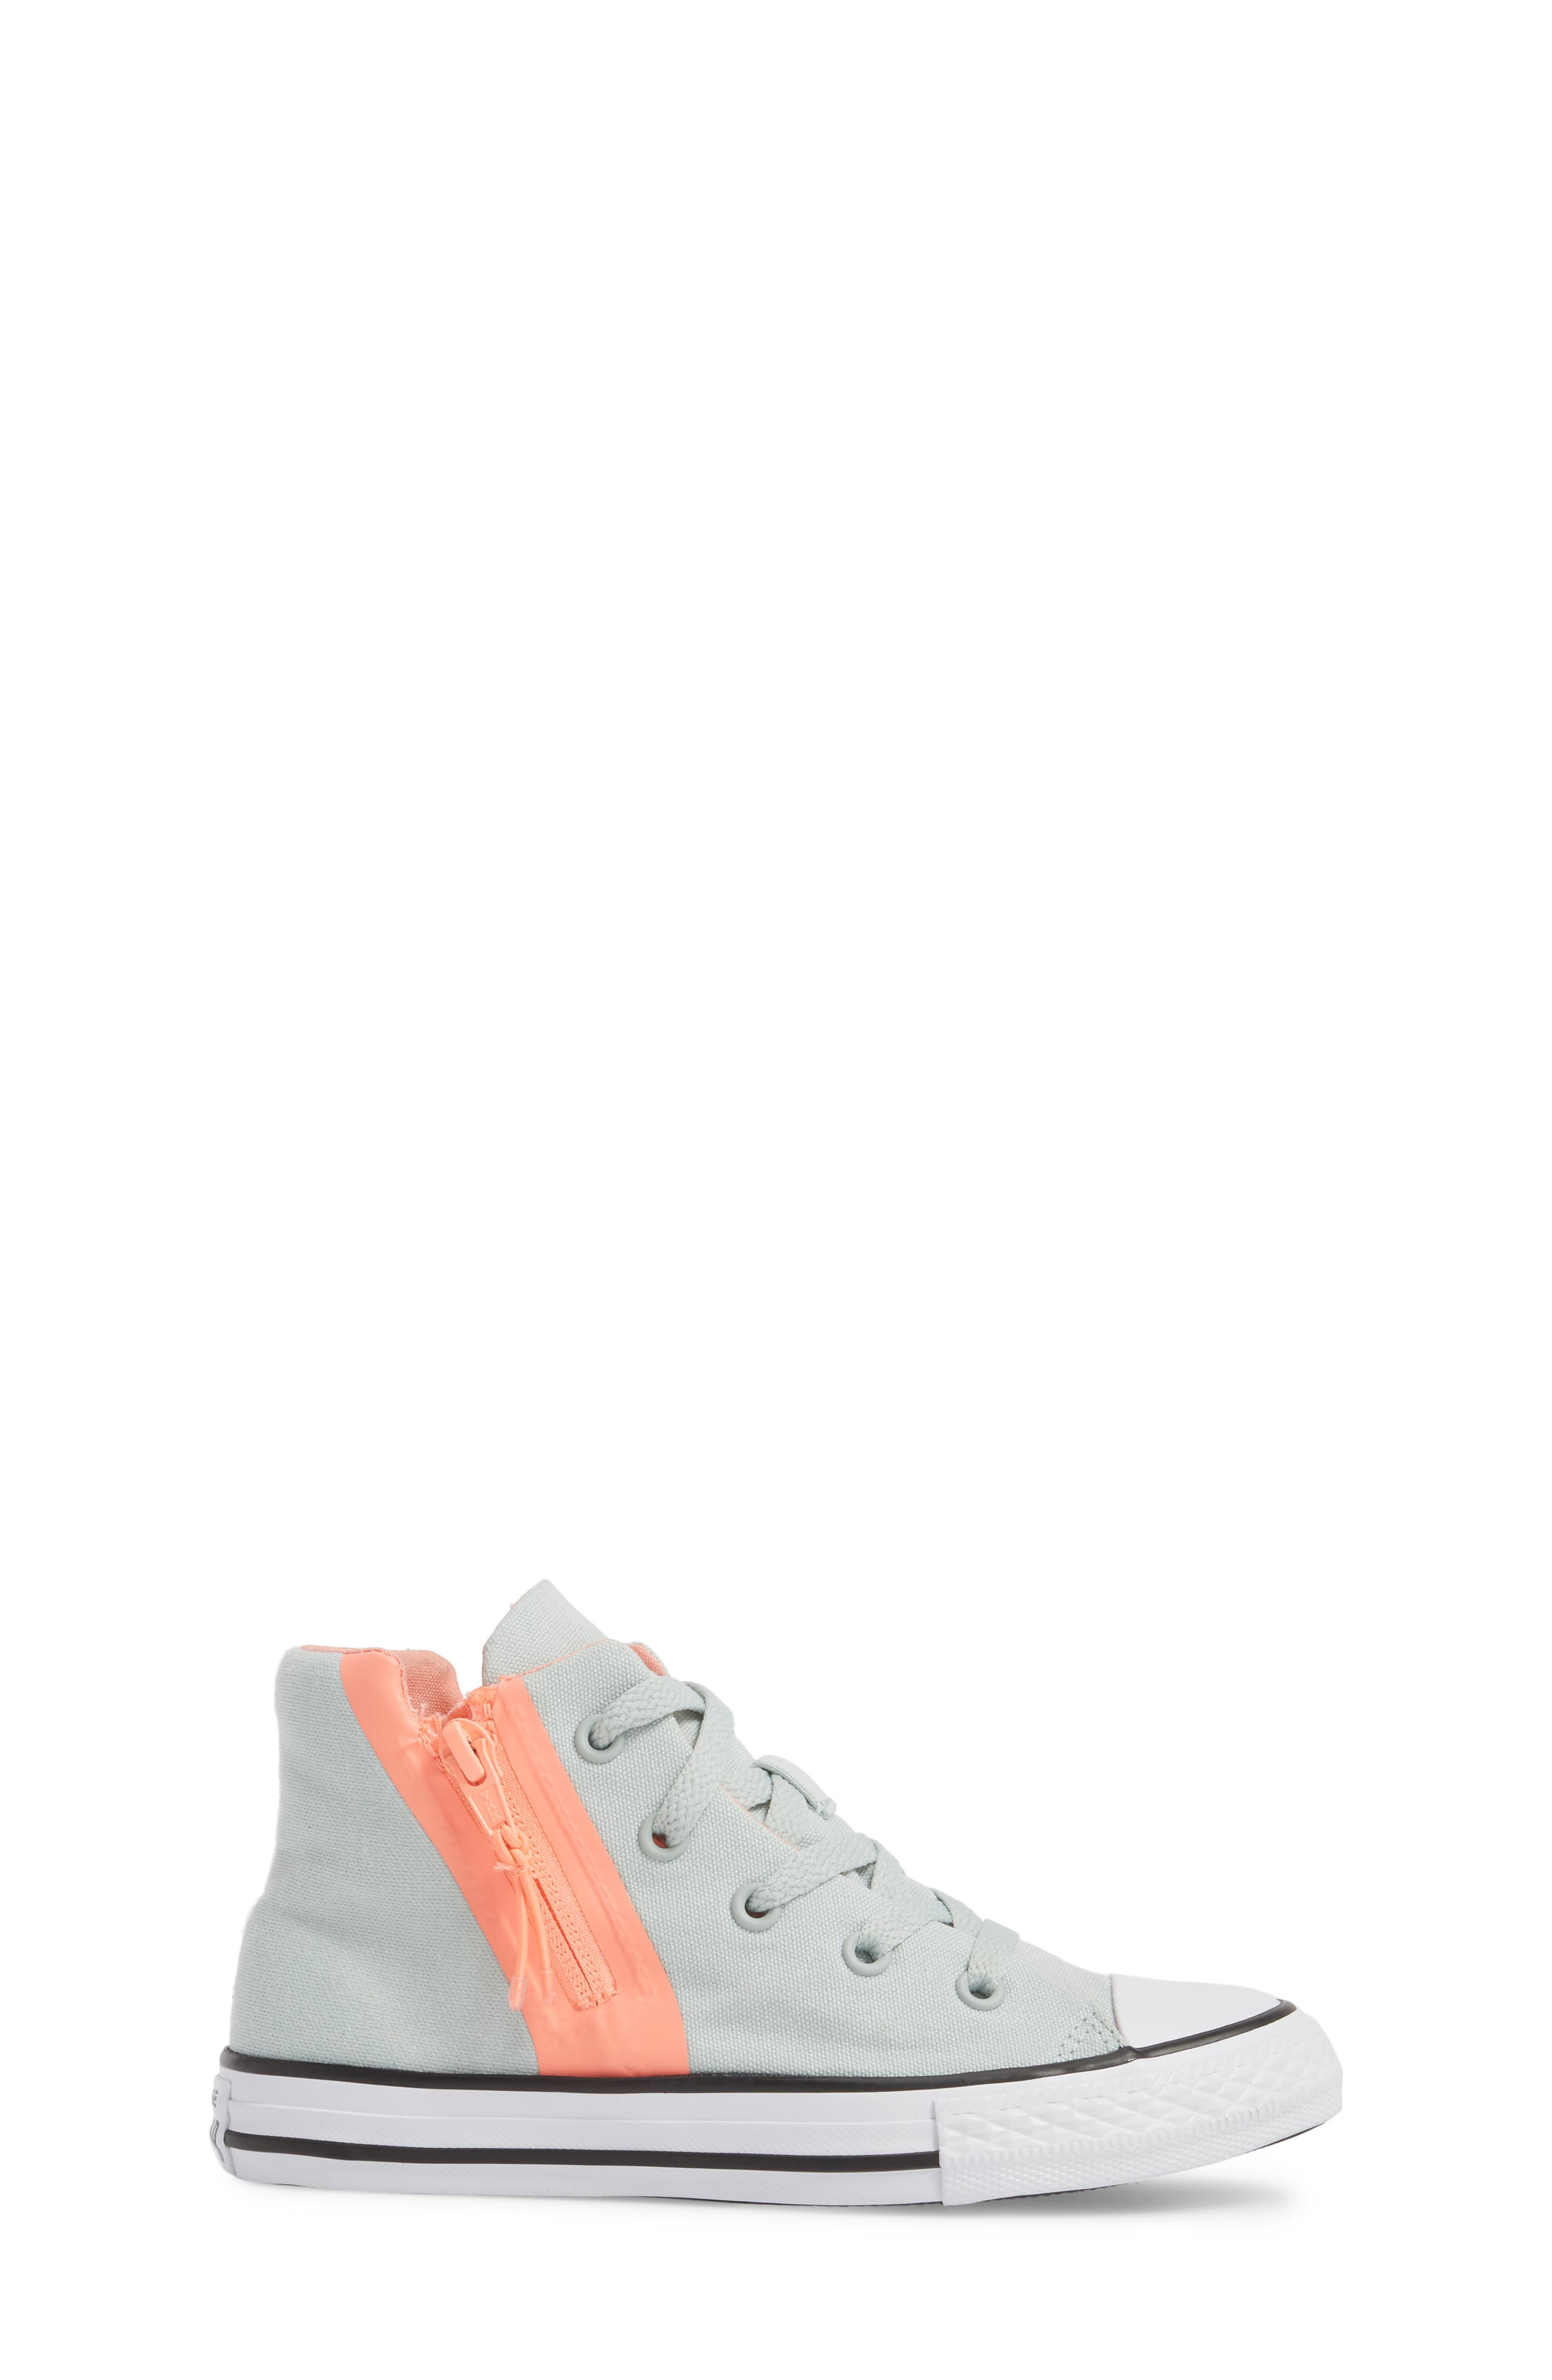 Chuck Taylor<sup>®</sup> All Star<sup>®</sup> Sport Zip High Top Sneaker,                             Alternate thumbnail 3, color,                             416